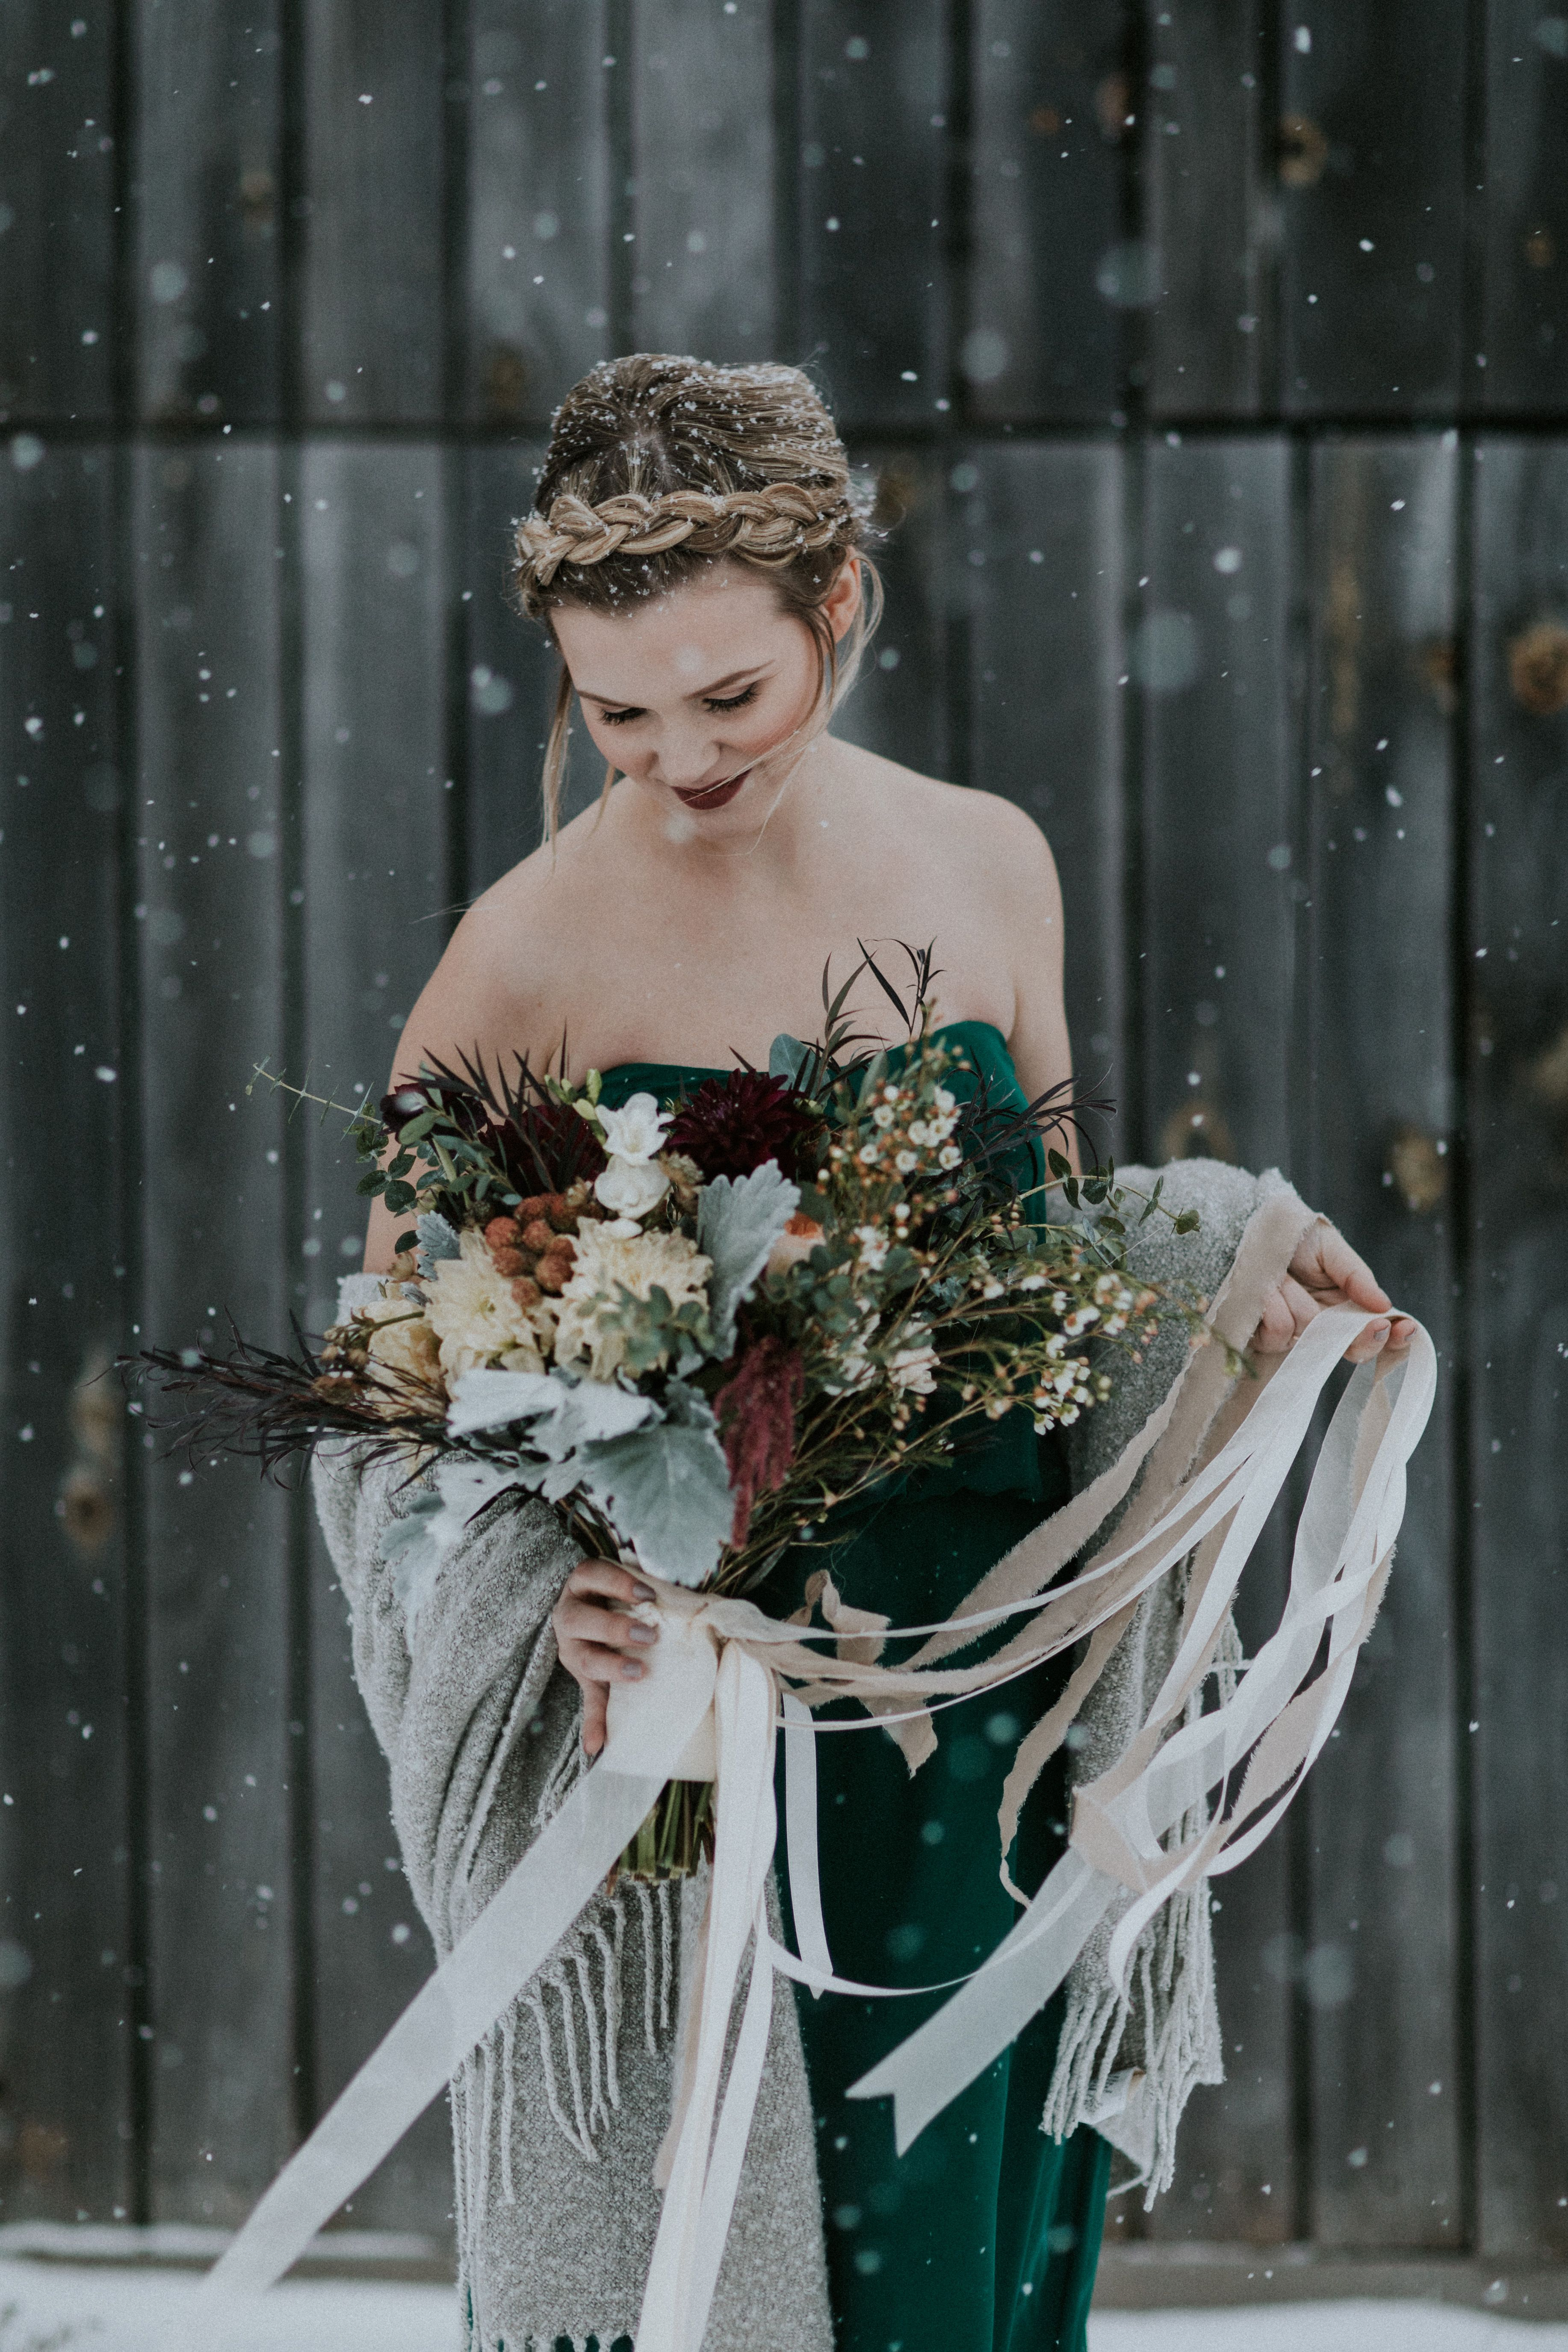 32 Winter Wedding Photos That Will Convince You to Get Hitched In ...